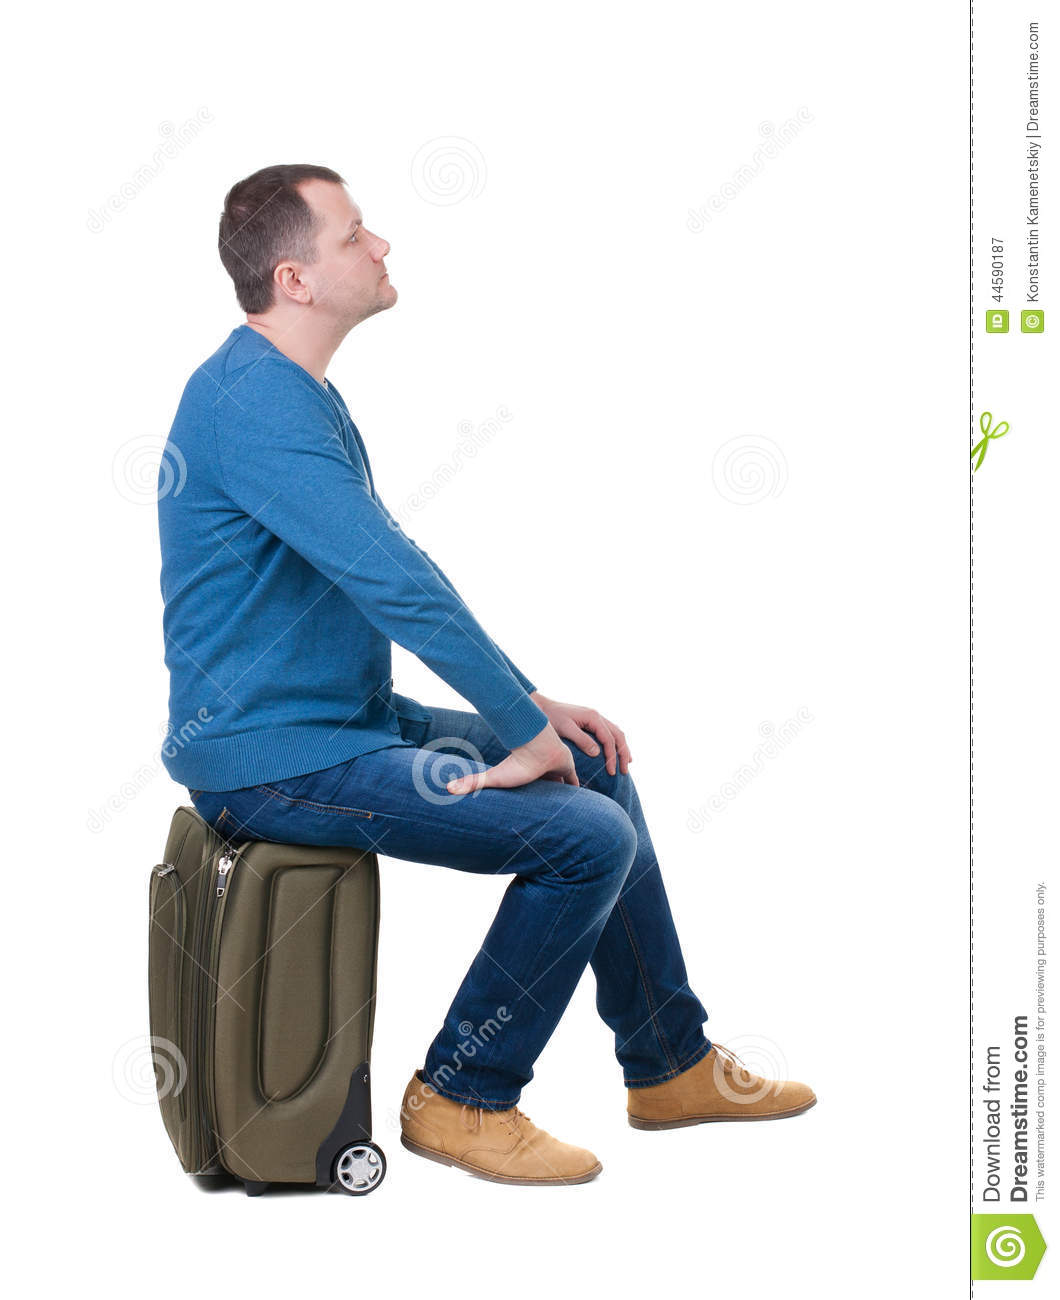 Back View Of A Man Sitting On A Suitcase Stock Image